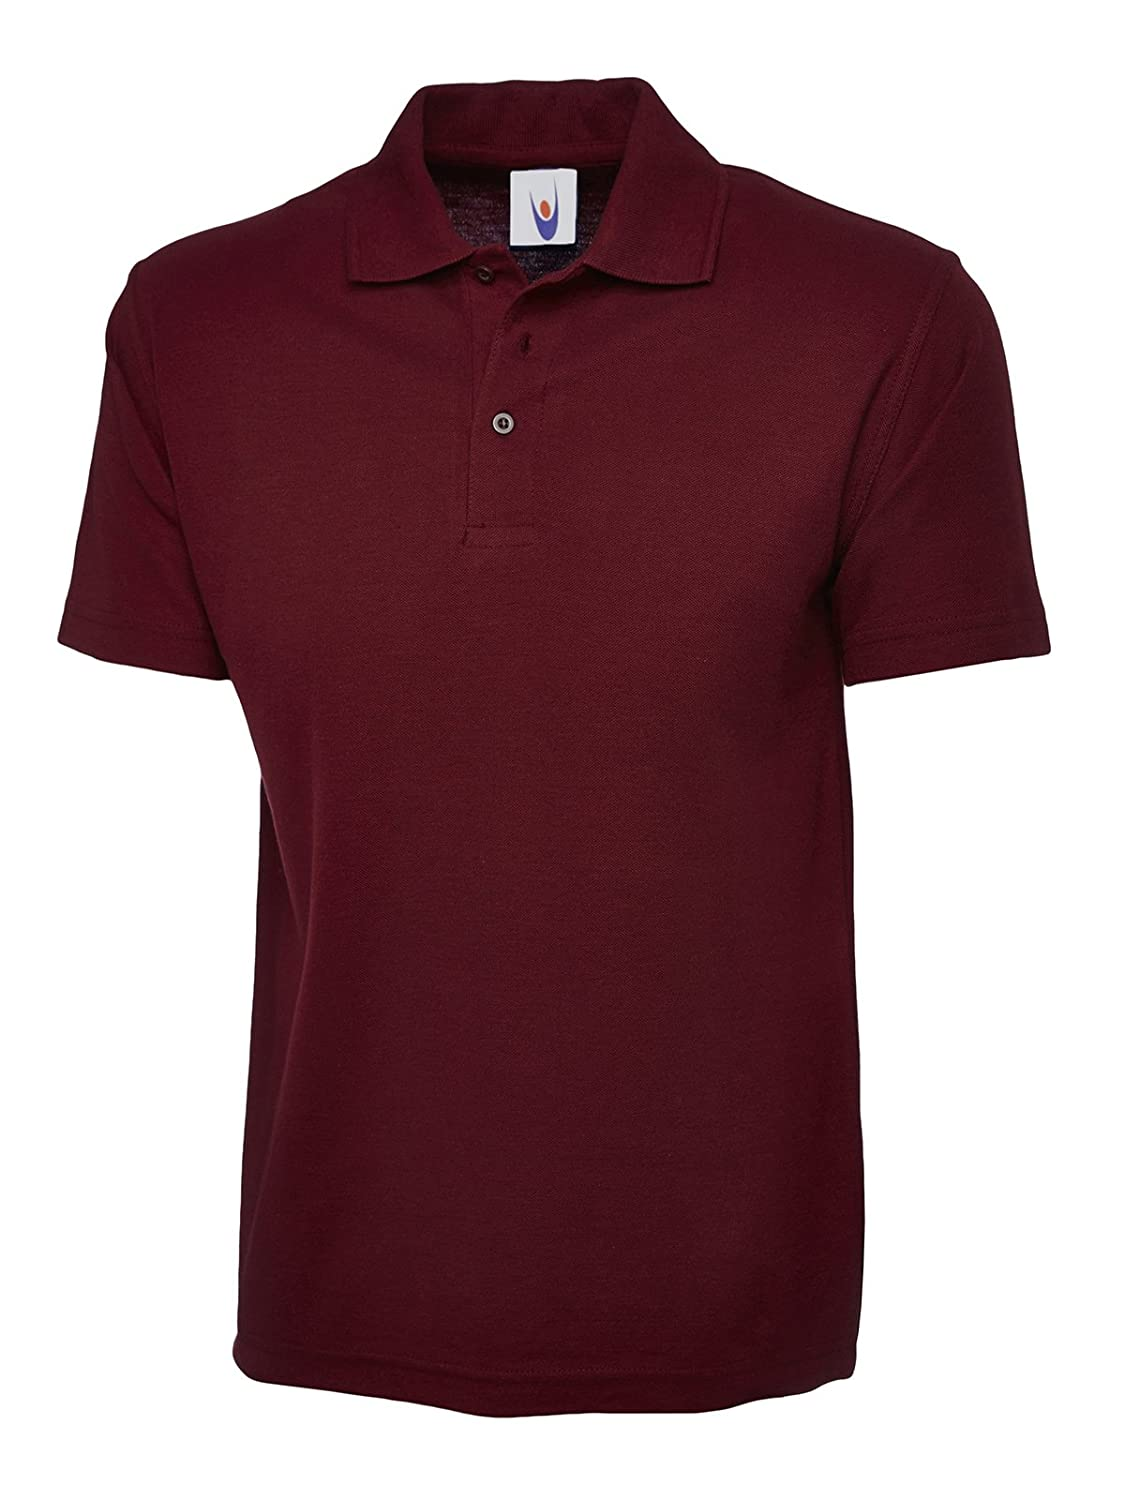 Uneek Clothing-Kids-Childrens Poloshirt-220 gsm-Maroon-11/13 Yrs 103MR11